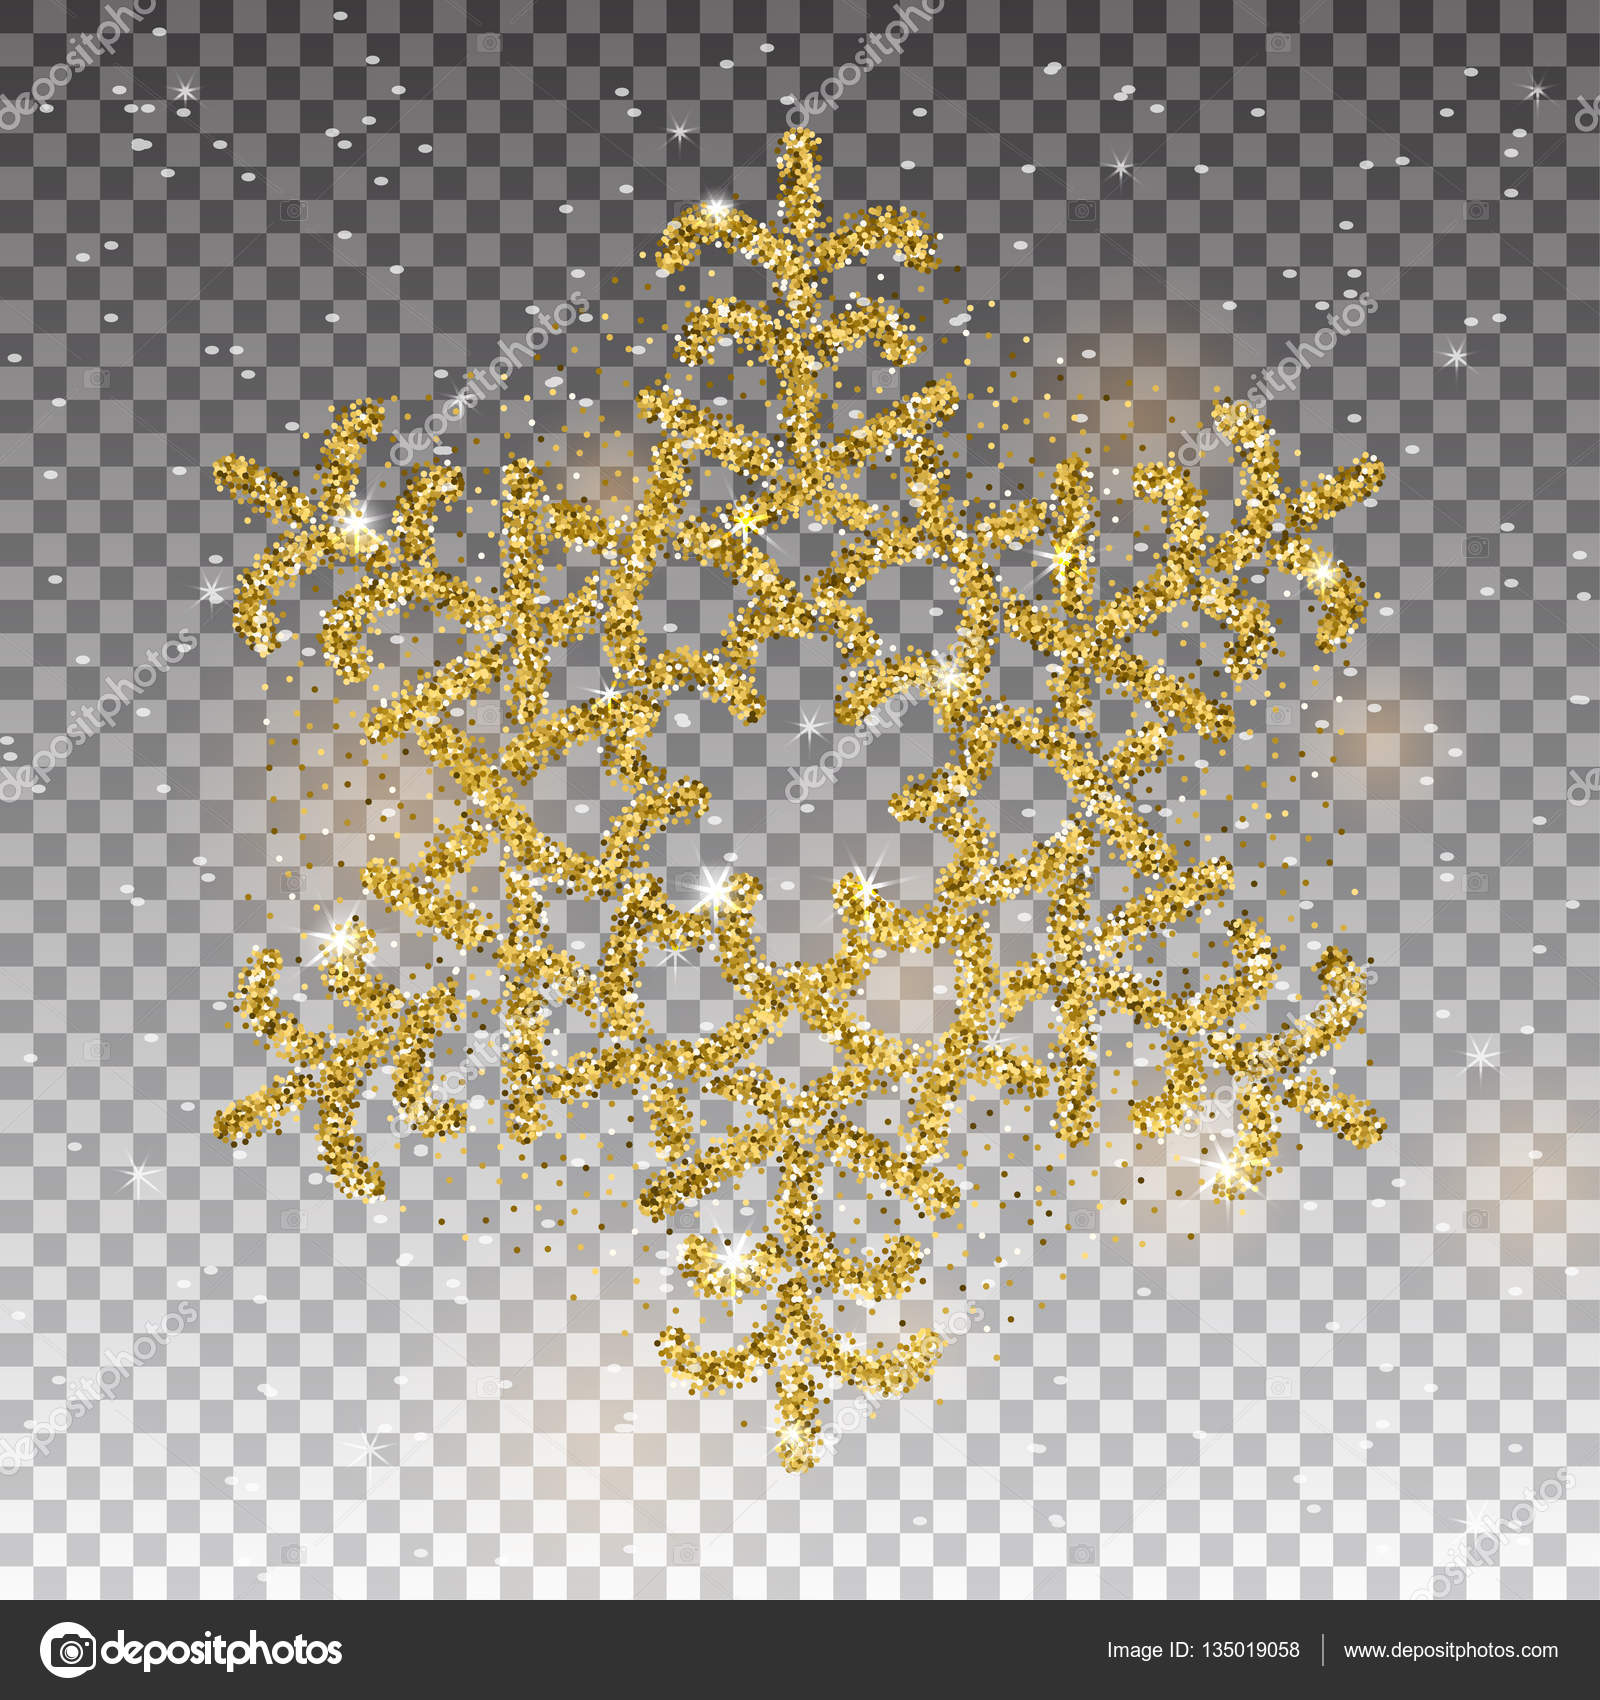 Sparkling golden snowflake with glitter texture for